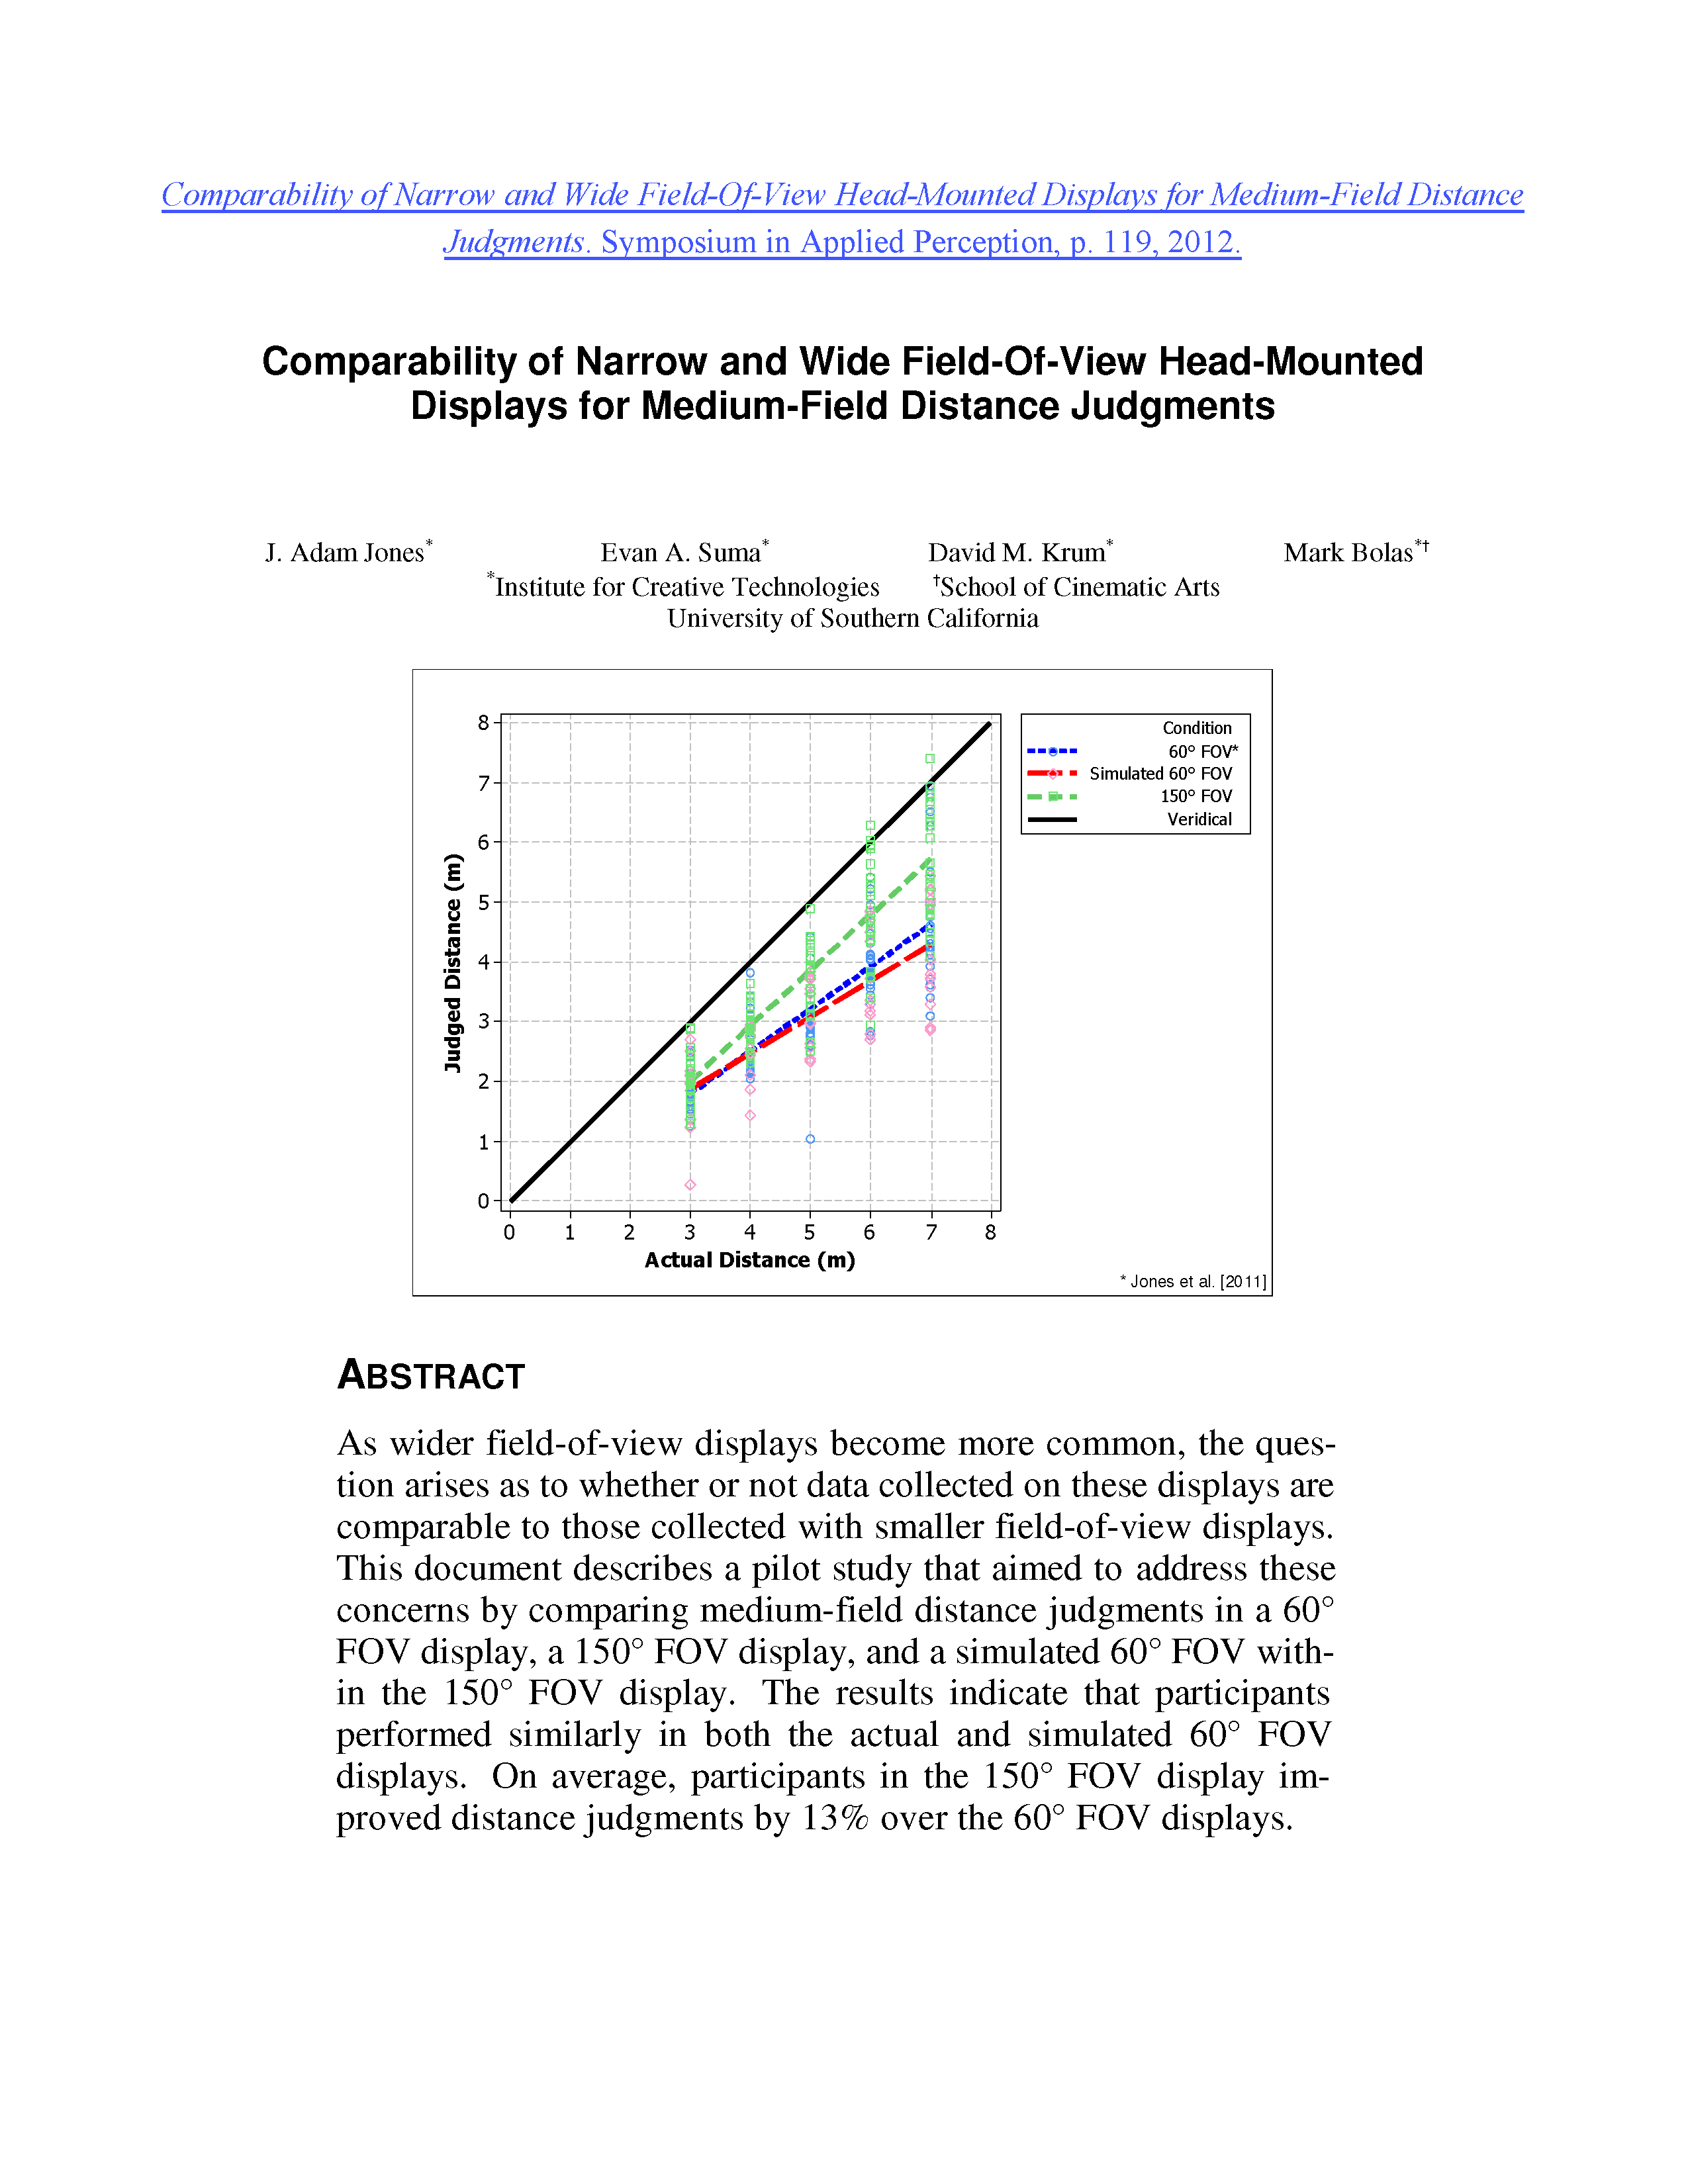 2012.08- Comparability of Narrow and Wide Field-Of-View Head-Mounted Displays_TOP SHEET.png